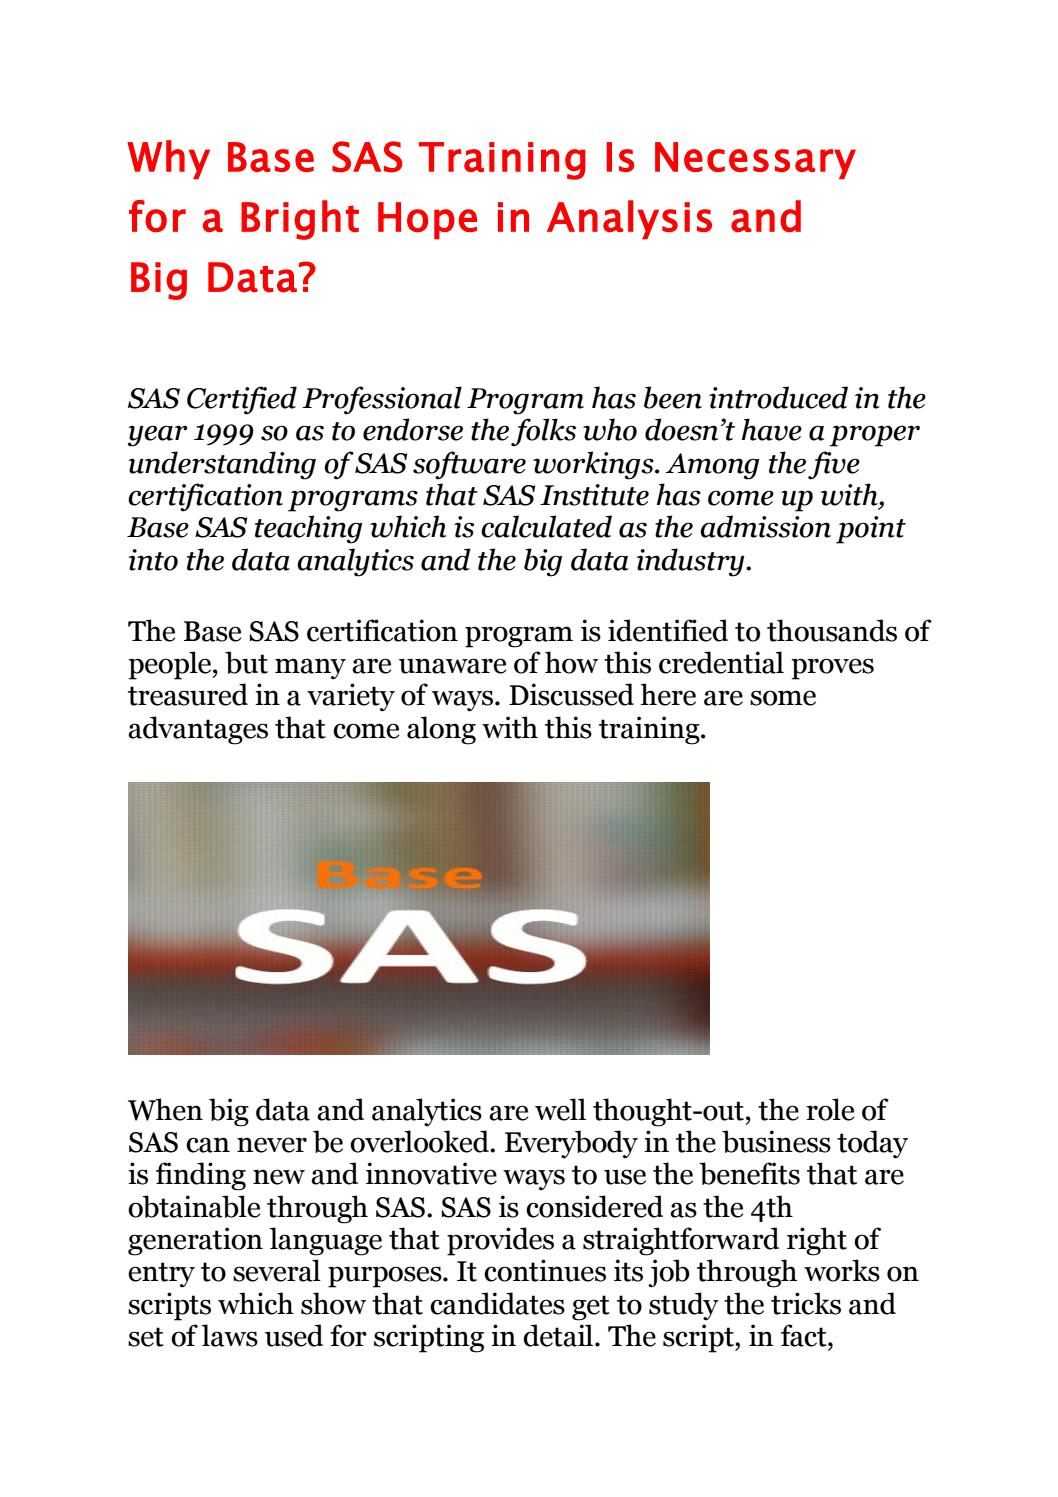 Why Base Sas Training Is Necessary For A Bright Hope In Analysis And